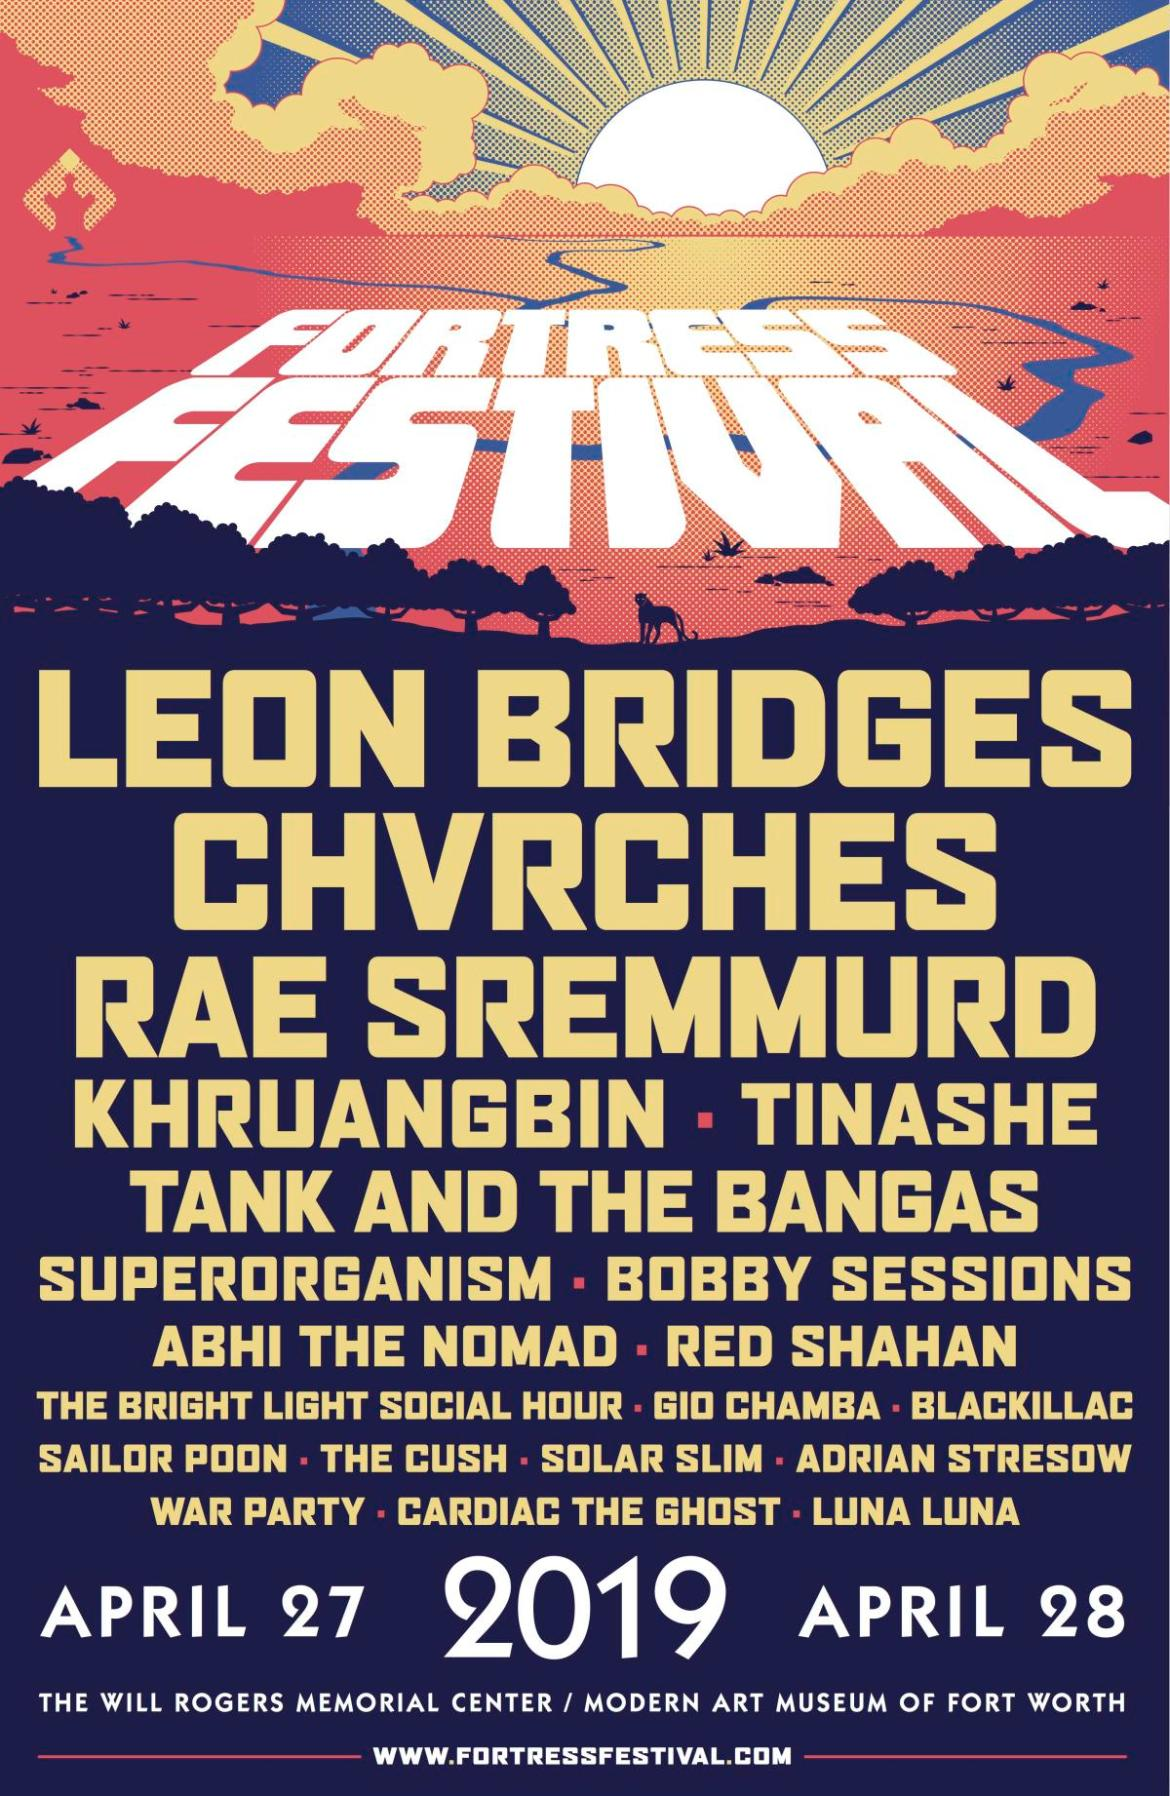 poster of an Illustrated sky and below are the names of performers at the festival.